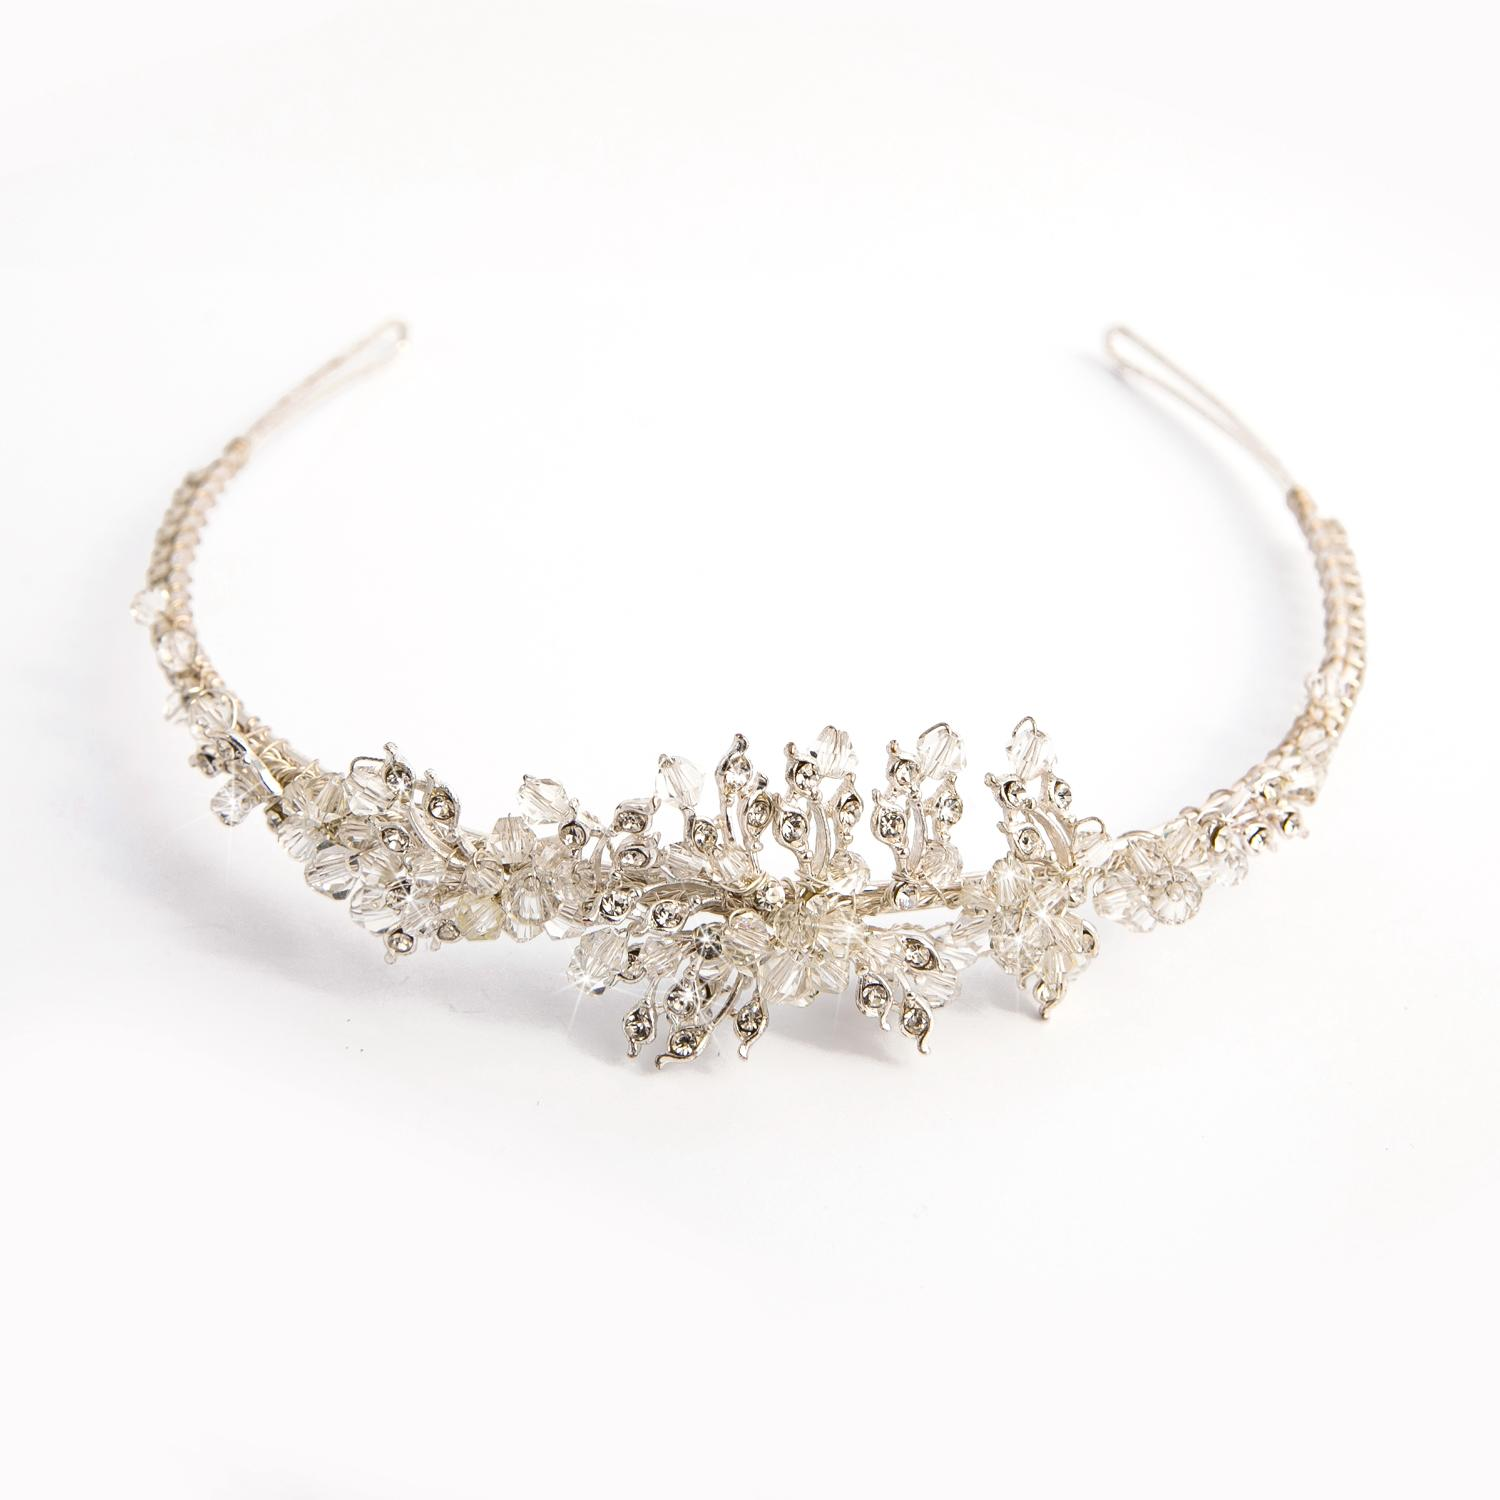 Silver Plated and Crystal Tiara